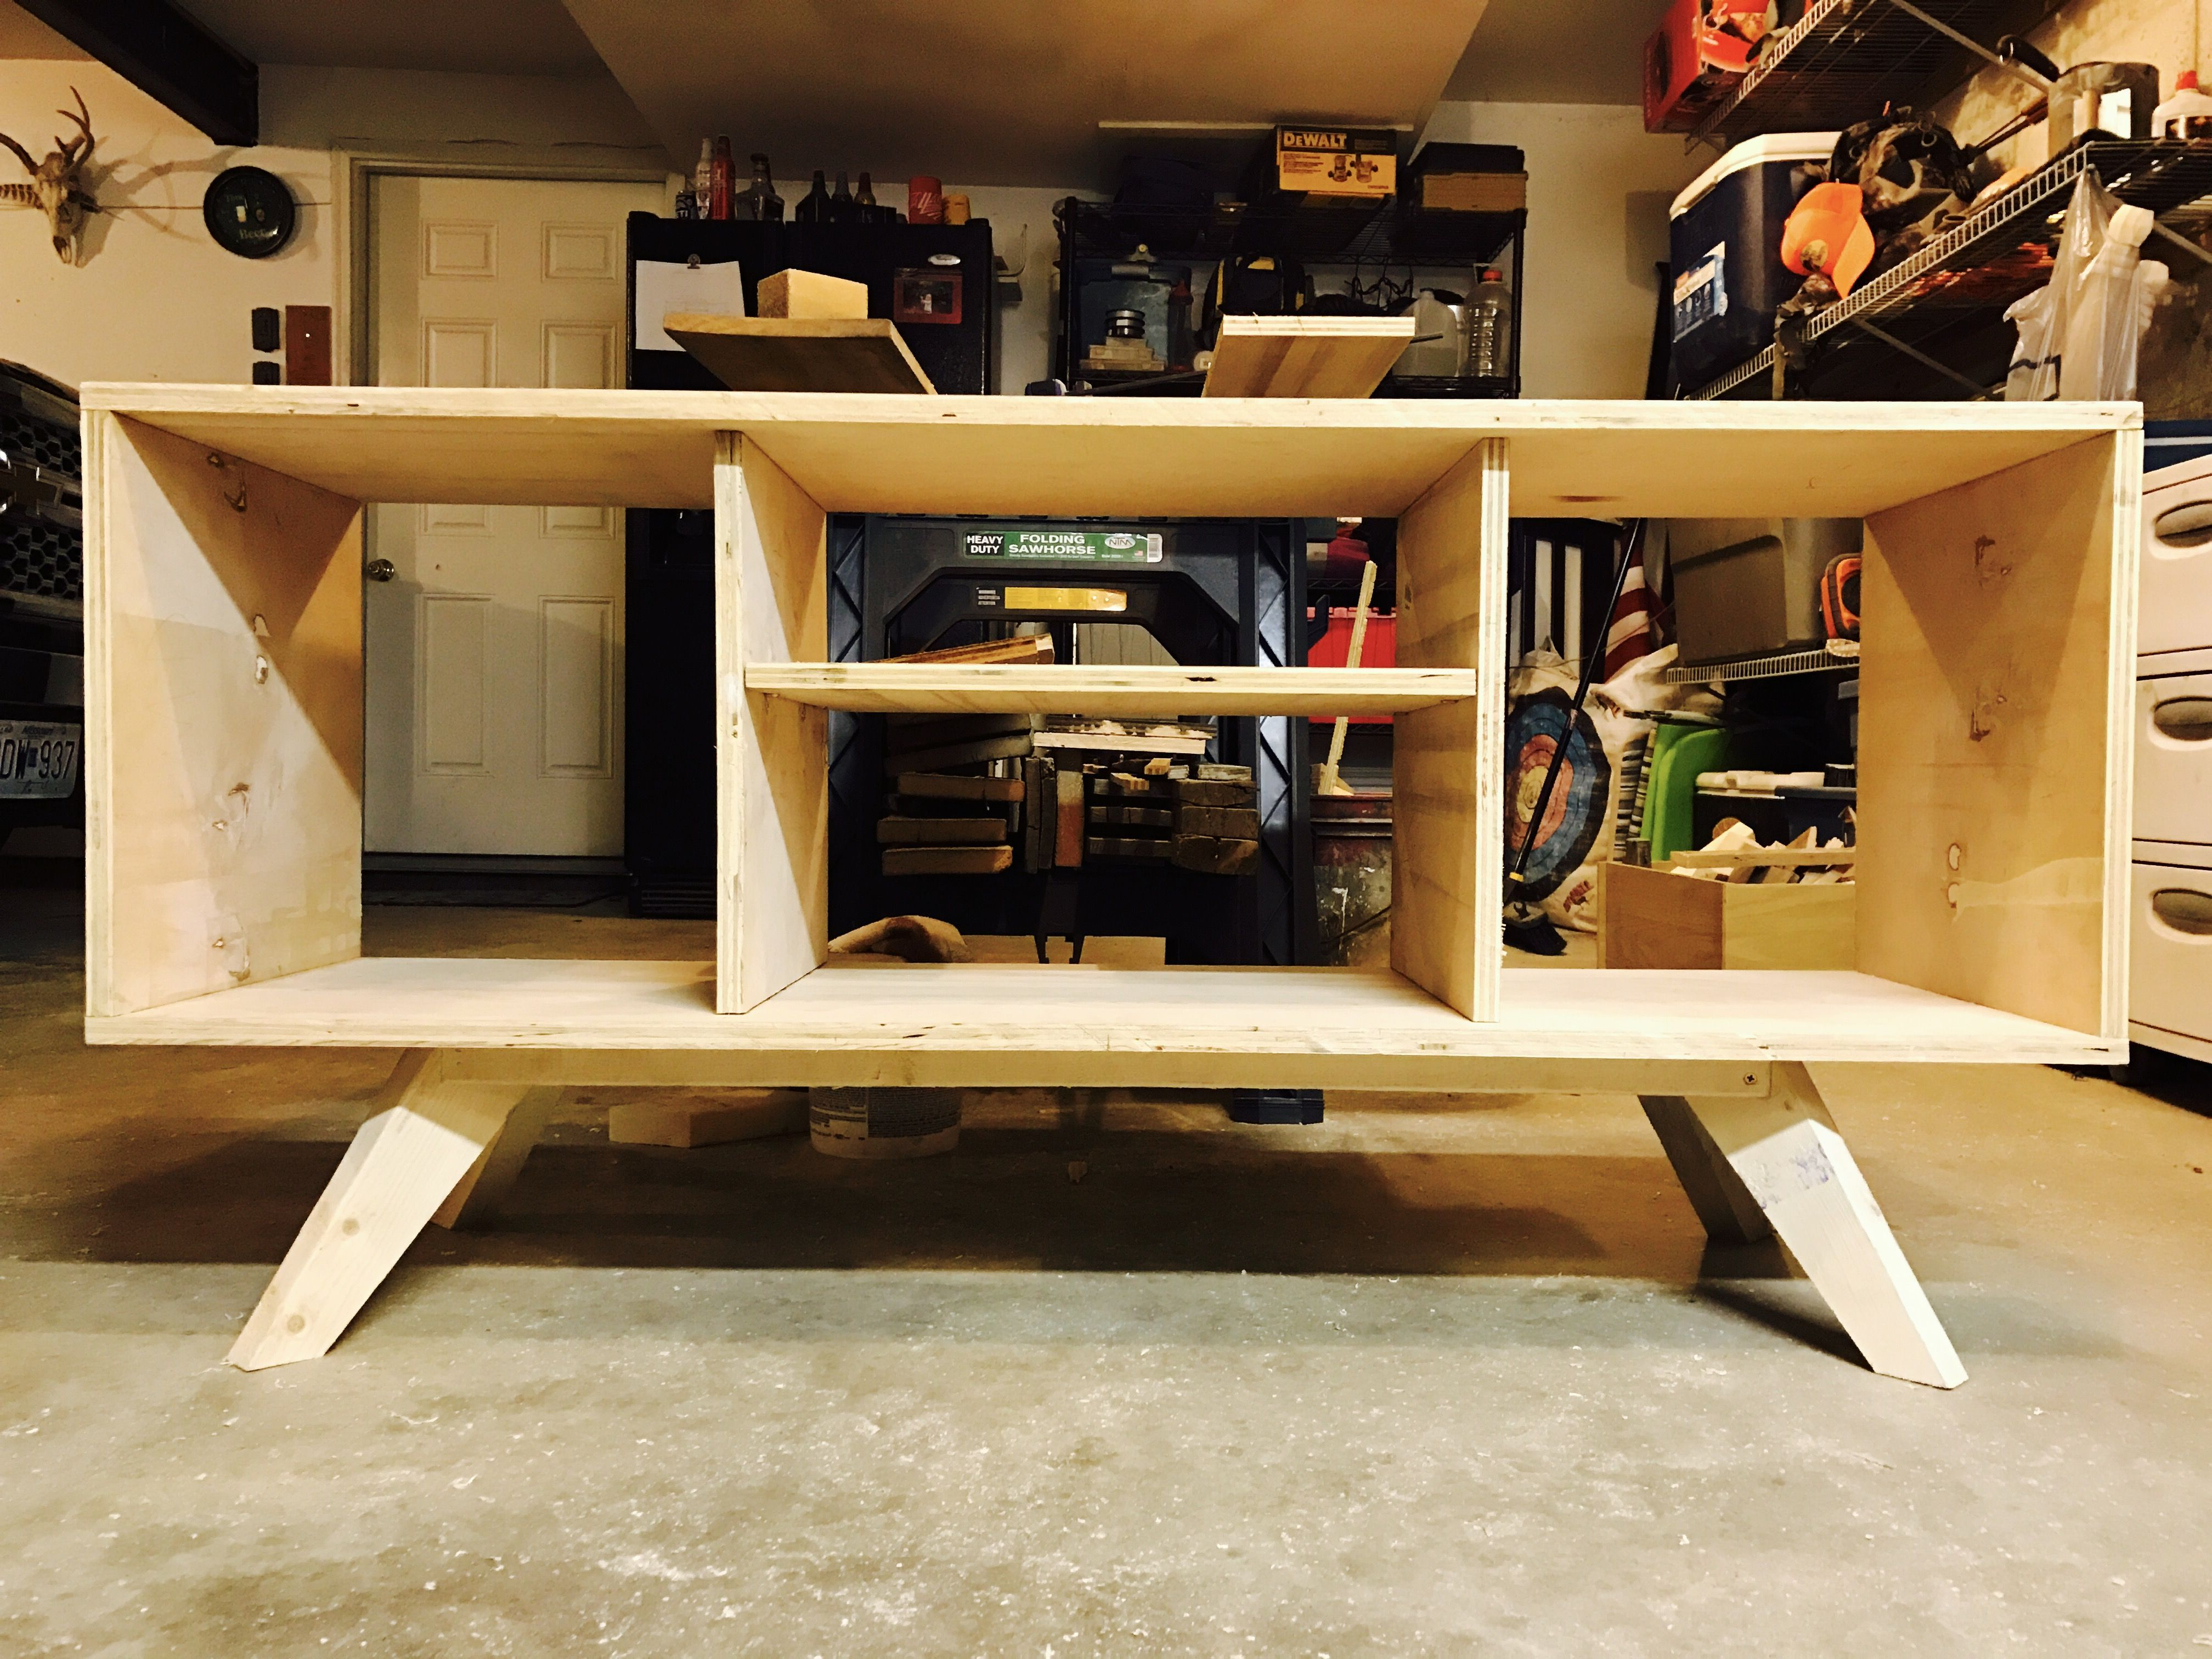 Tv Stand Designs In Plywood : Best diy tv stand ideas for your room interior want to make